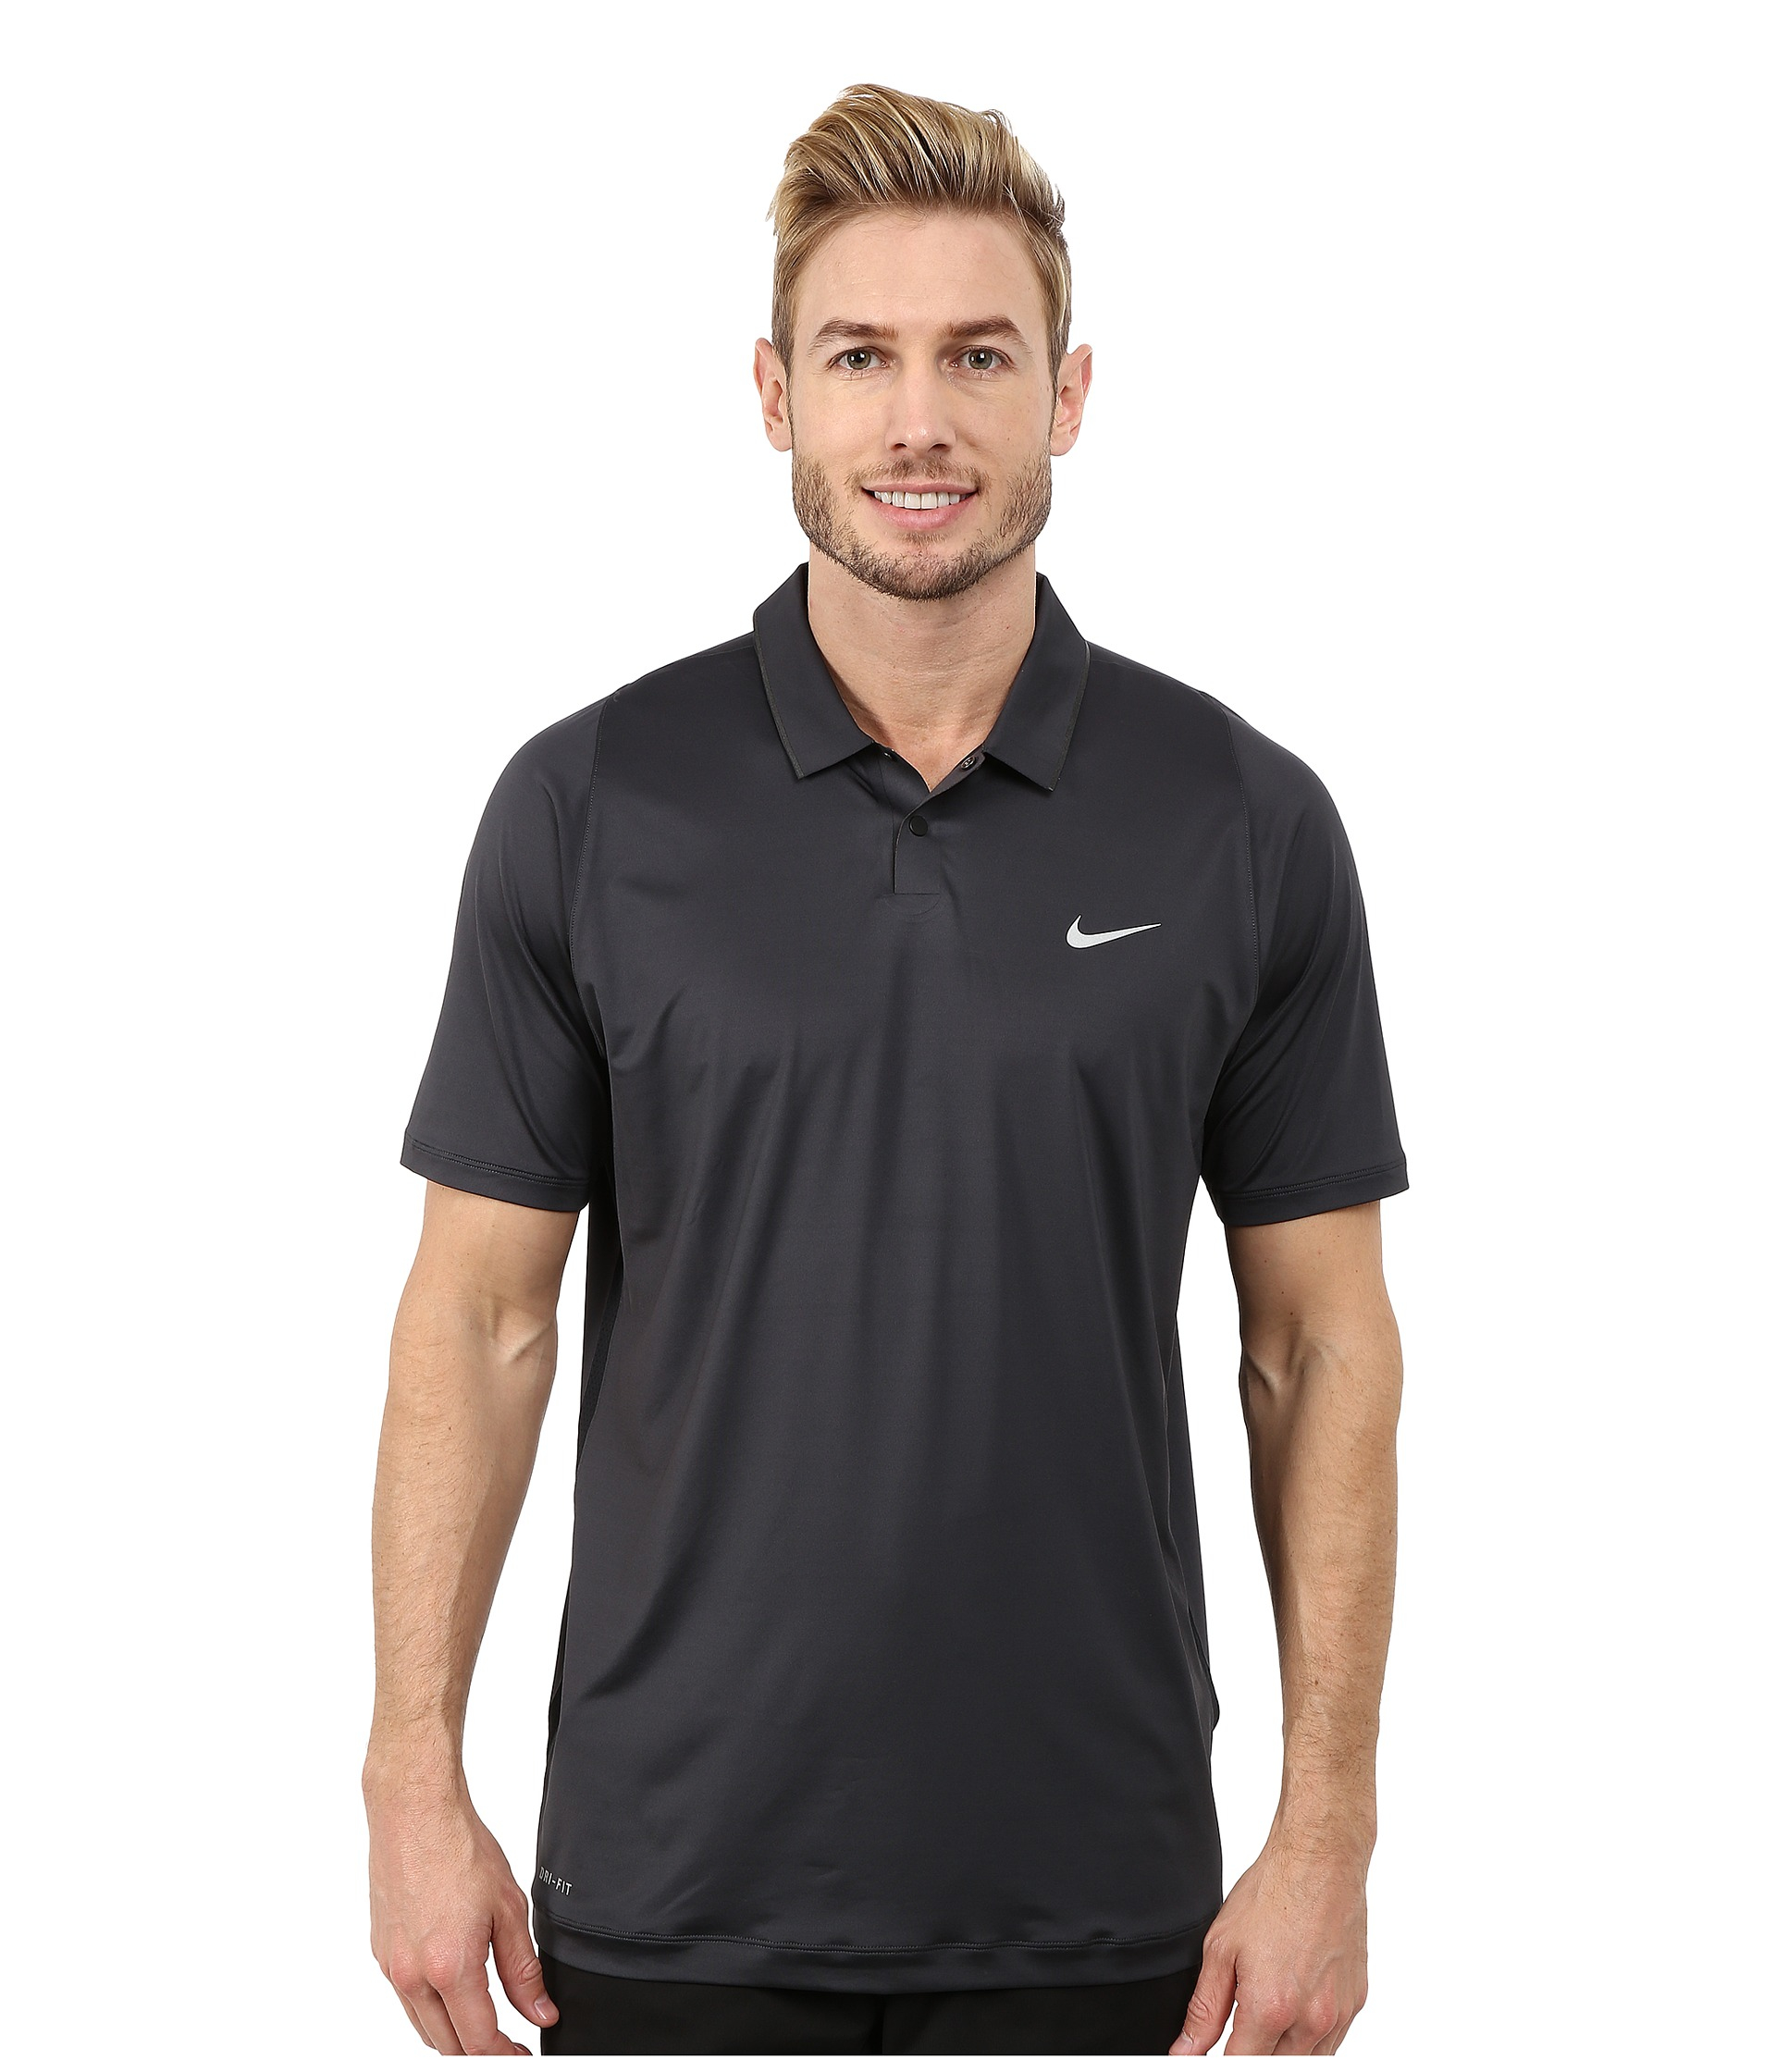 e4e689124 Nike Tiger Woods Velocity Ultra Polo Shirt in Gray for Men - Lyst